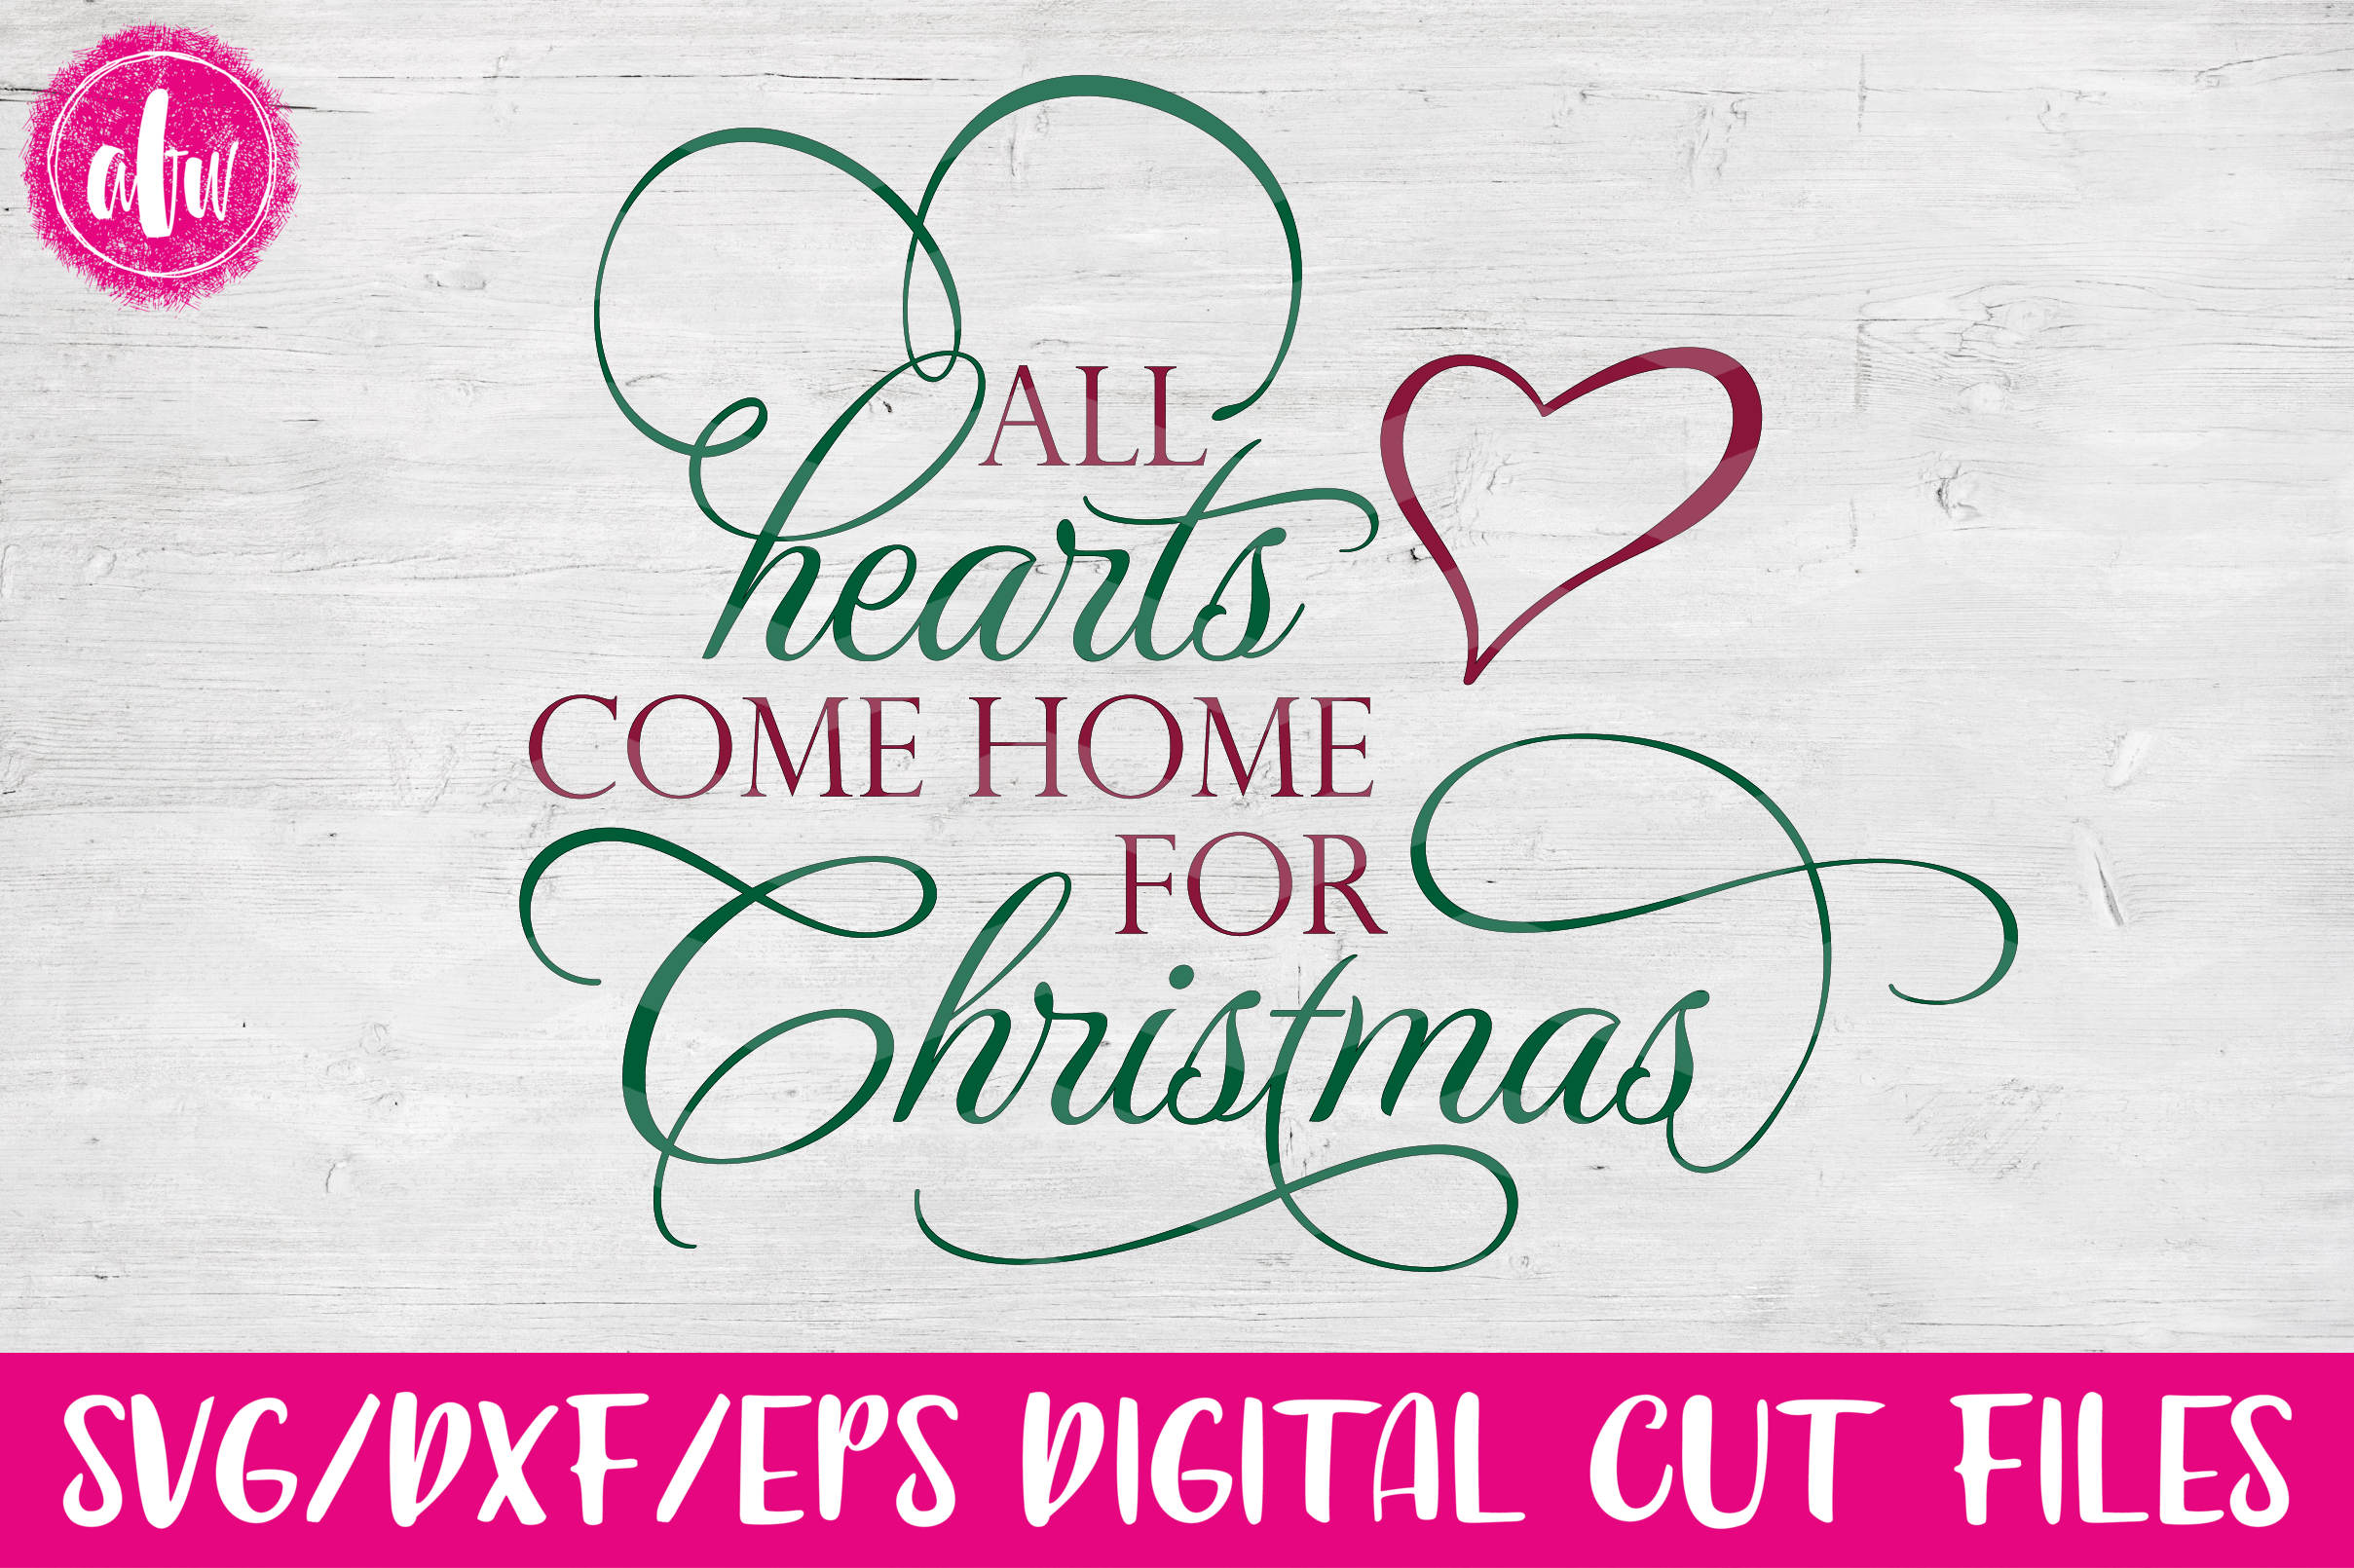 All Hearts Come Home for Christmas - SVG, DXF, EPS Cut File example image 1